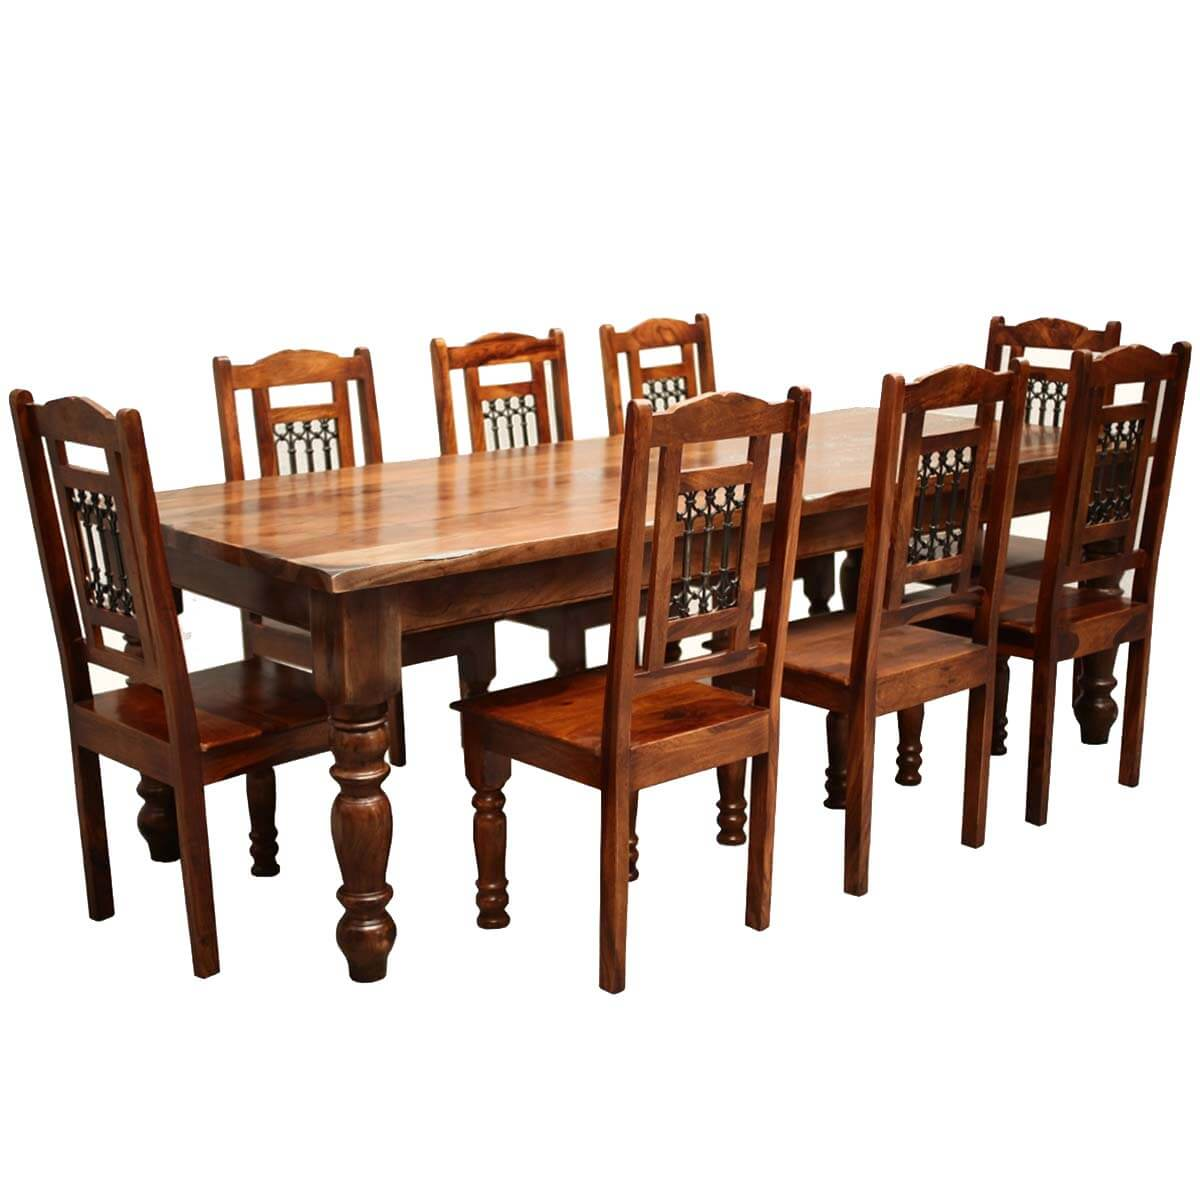 Rustic furniture solid wood large dining table 8 chair set for Table and chair set